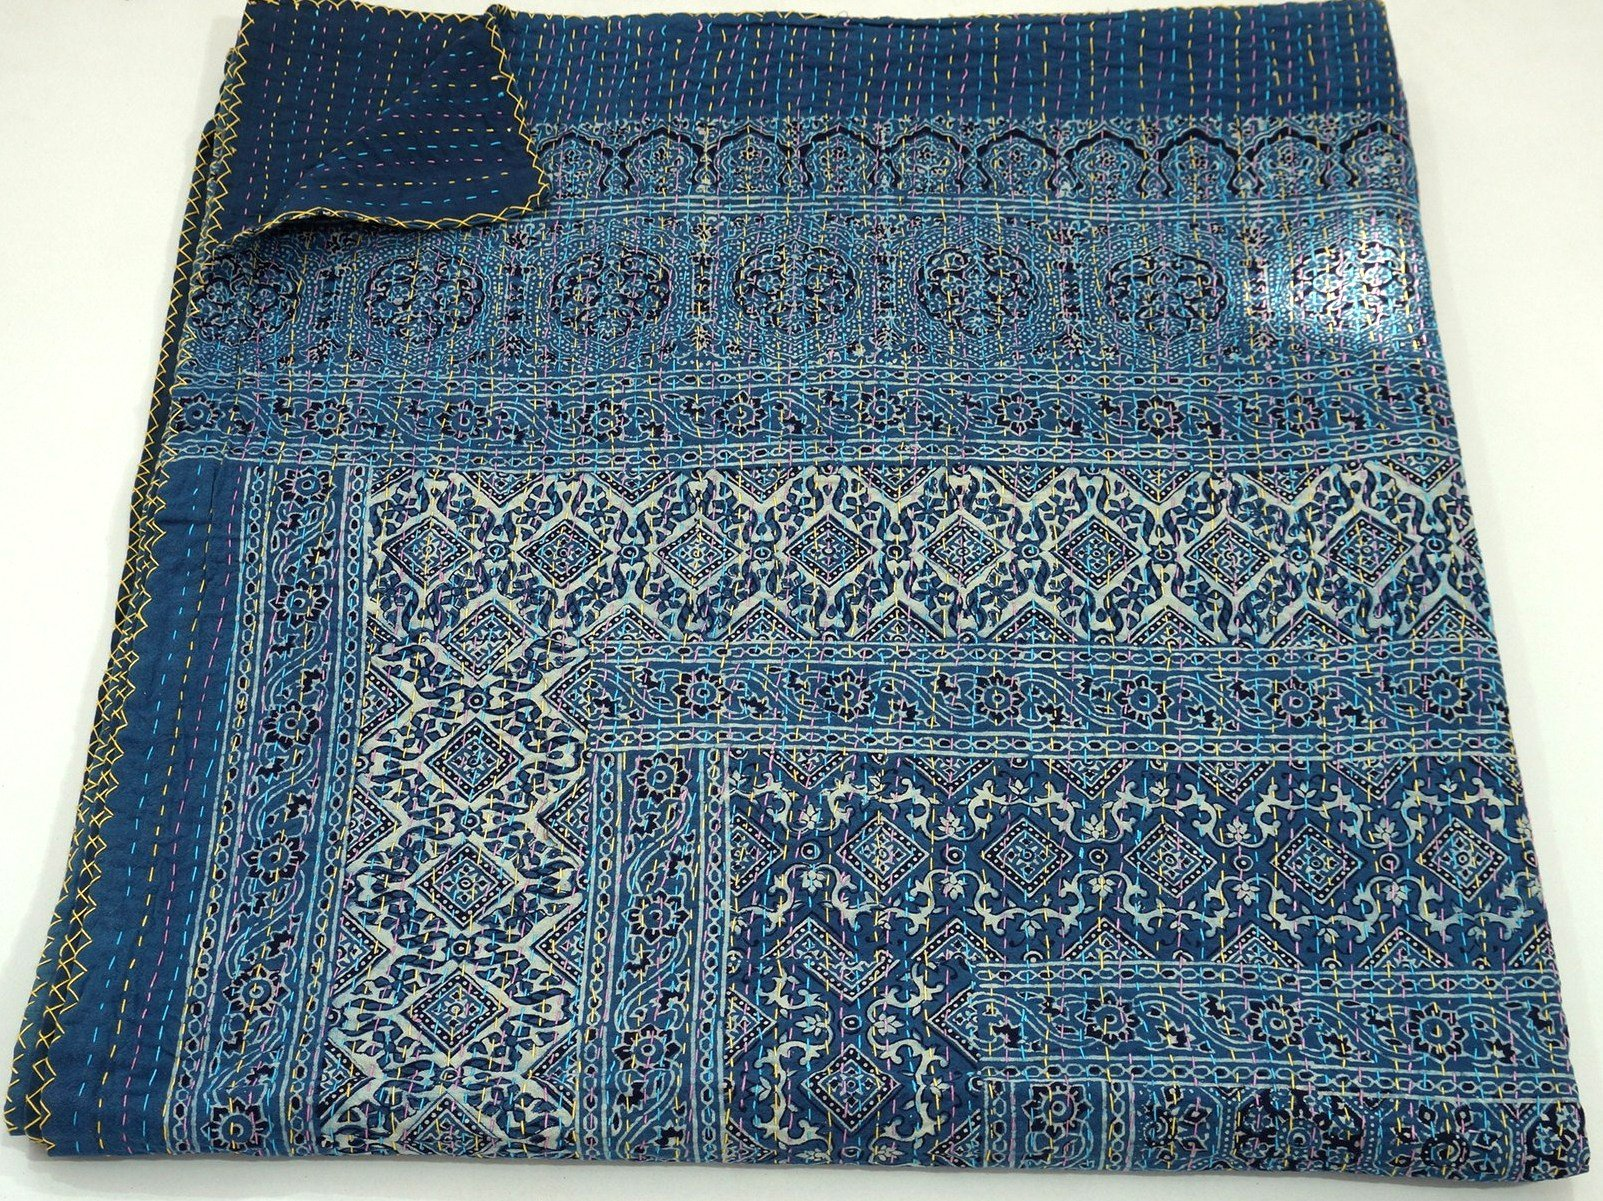 Blue Kantha Quilt, King Size Hand Stitch Kantha Ajrakh Bed-cover, Indian Bohemian Kantha Ajrakh Quilt